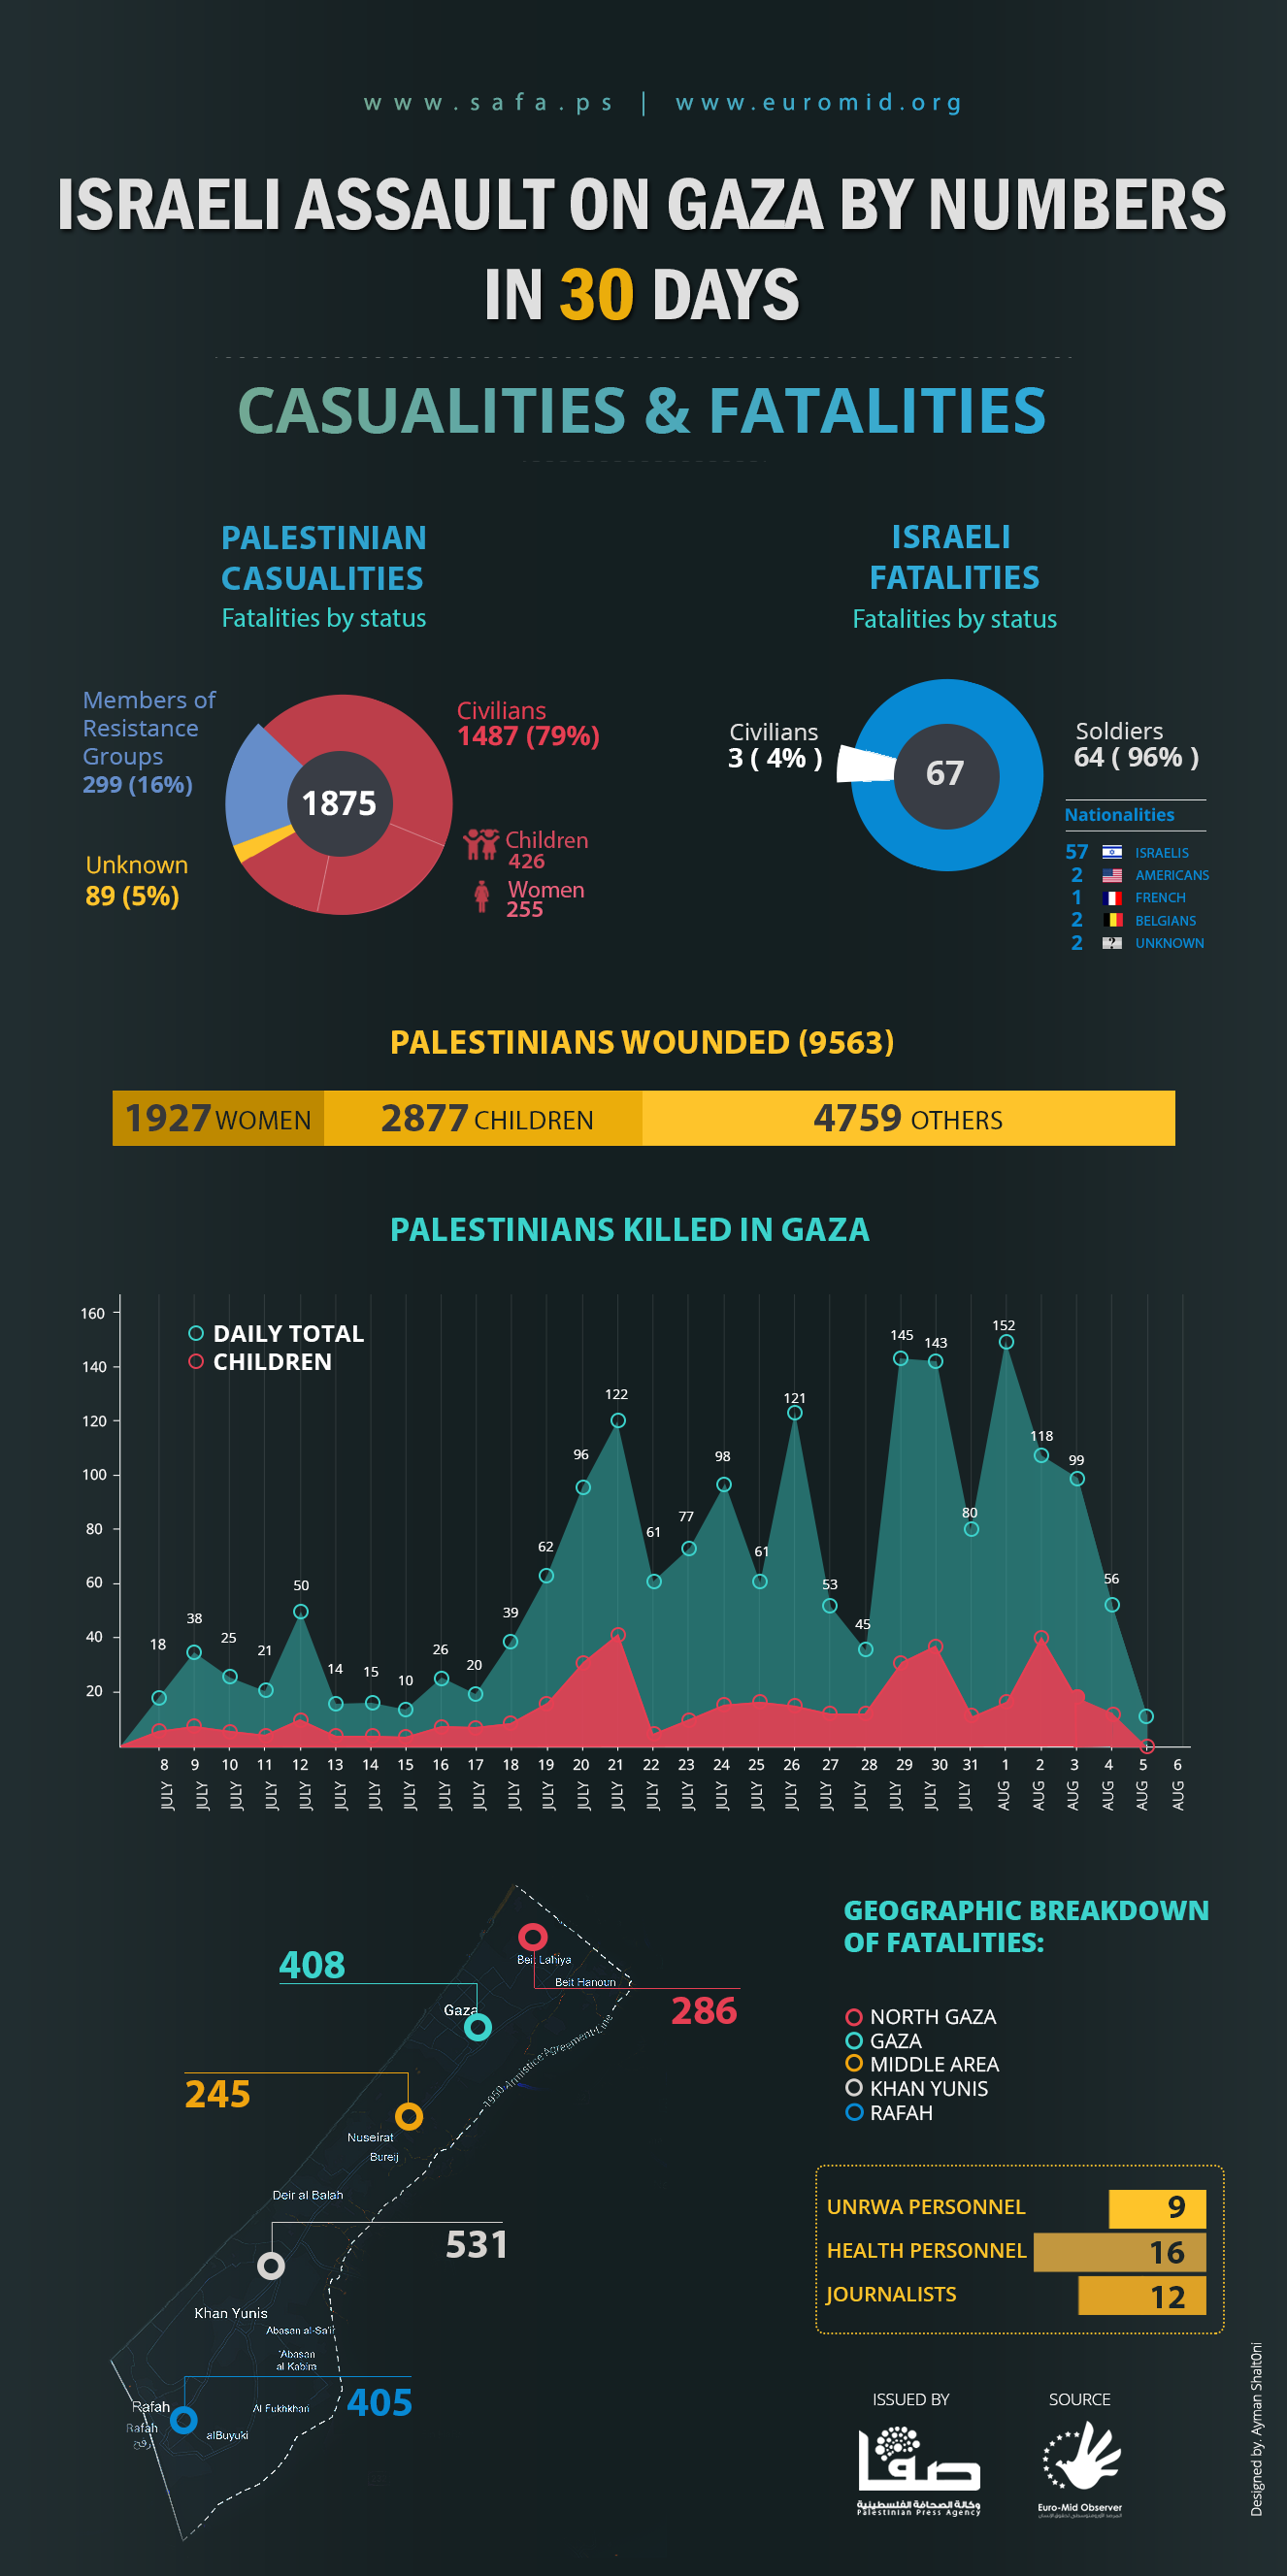 Israeli Assault on Gaza By Numbers in 30 Days